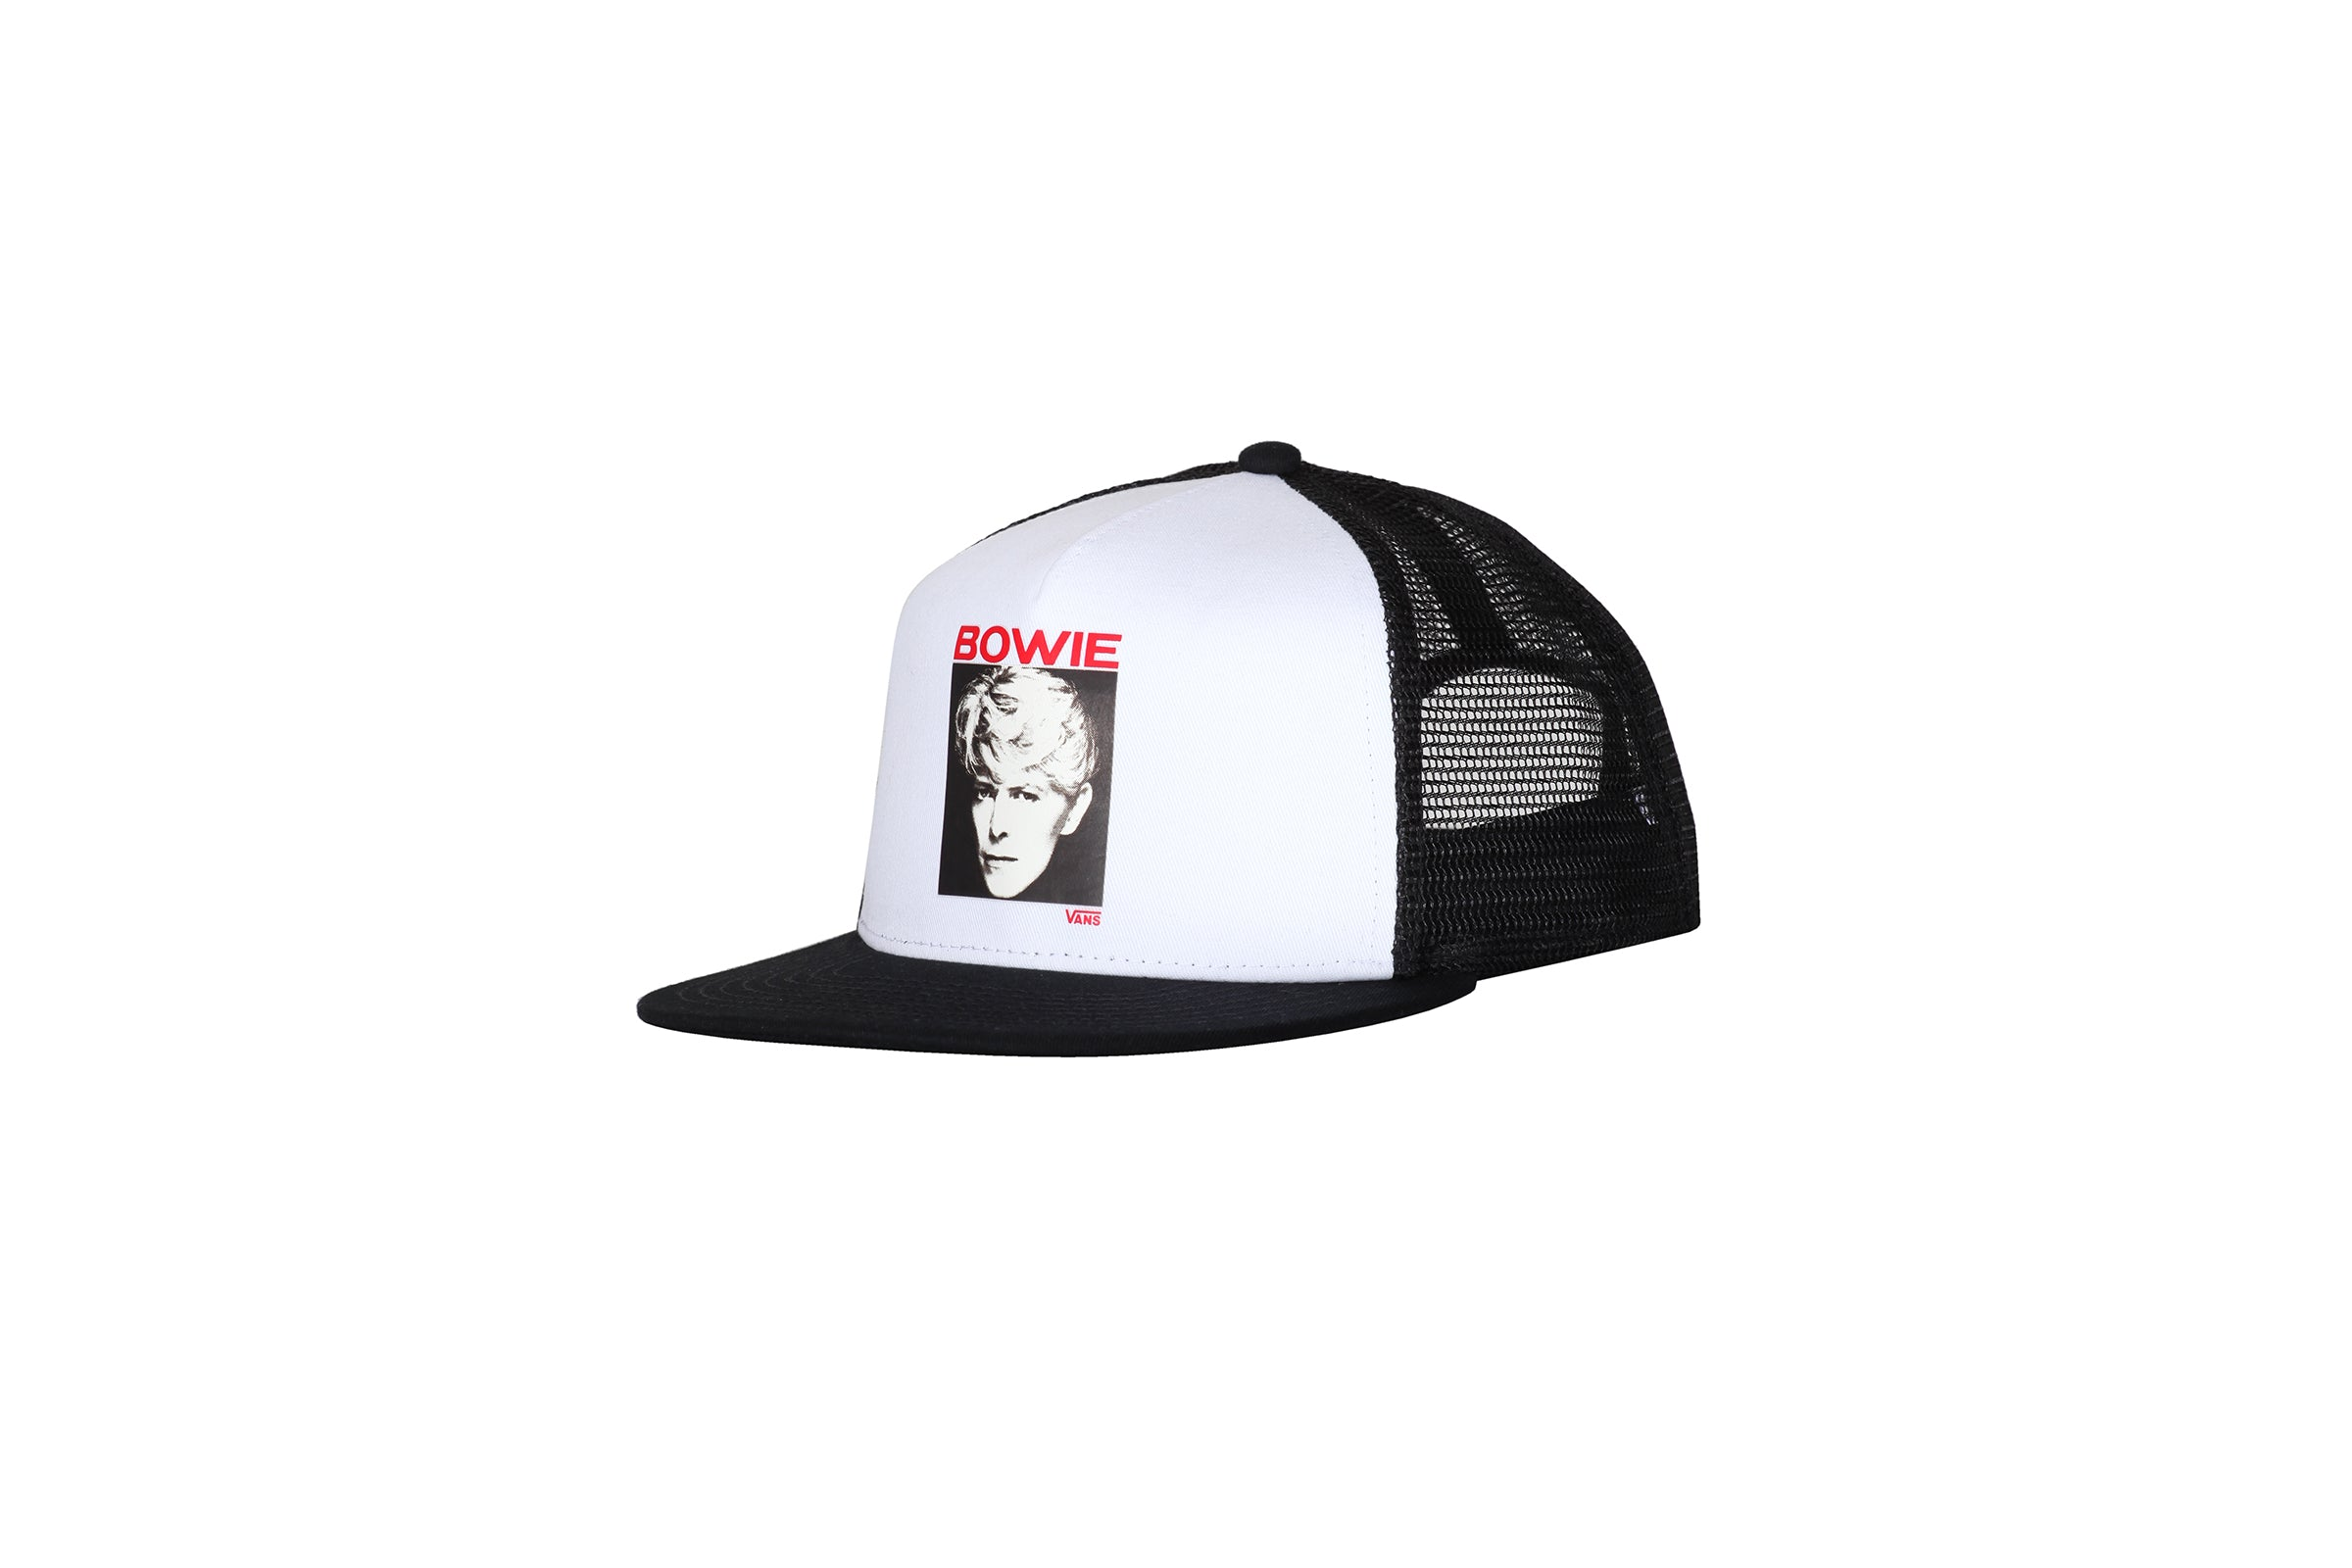 8a48ddd31d2 Vans Serious Moonlight Trucker Cap x David Bowie